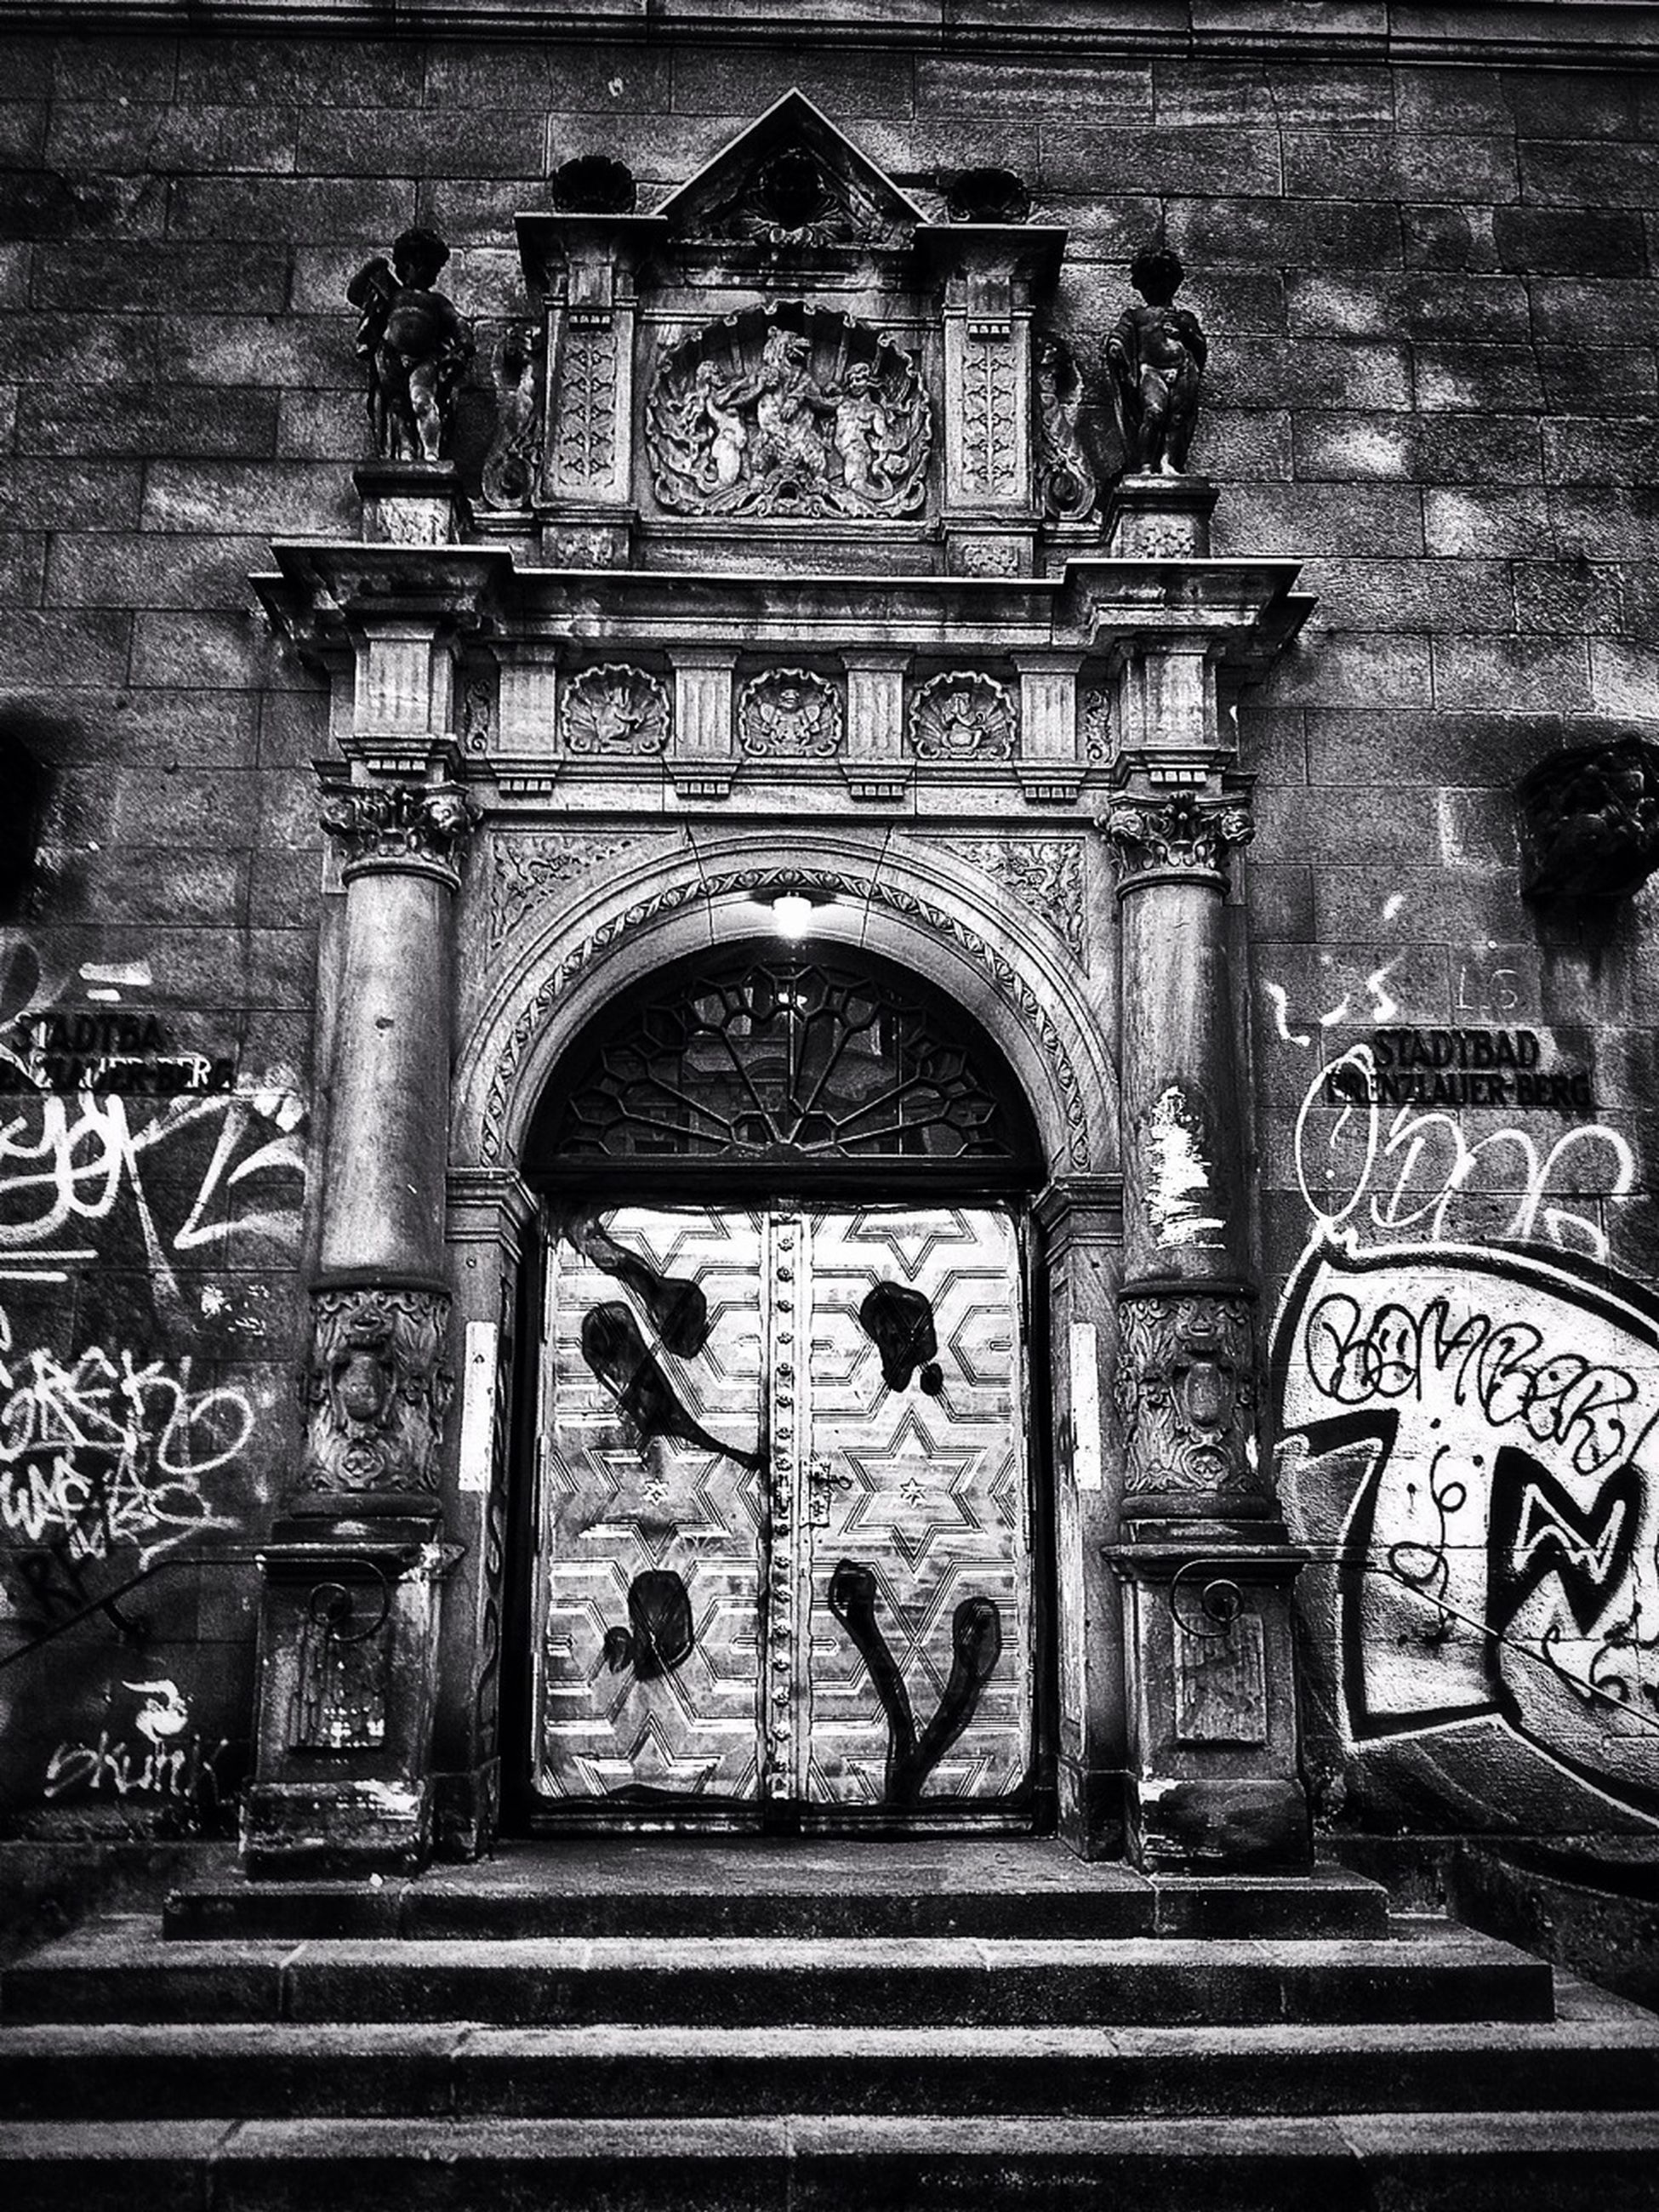 architecture, built structure, building exterior, art and craft, art, entrance, creativity, door, text, human representation, gate, graffiti, wall - building feature, facade, arch, old, outdoors, ornate, closed, day